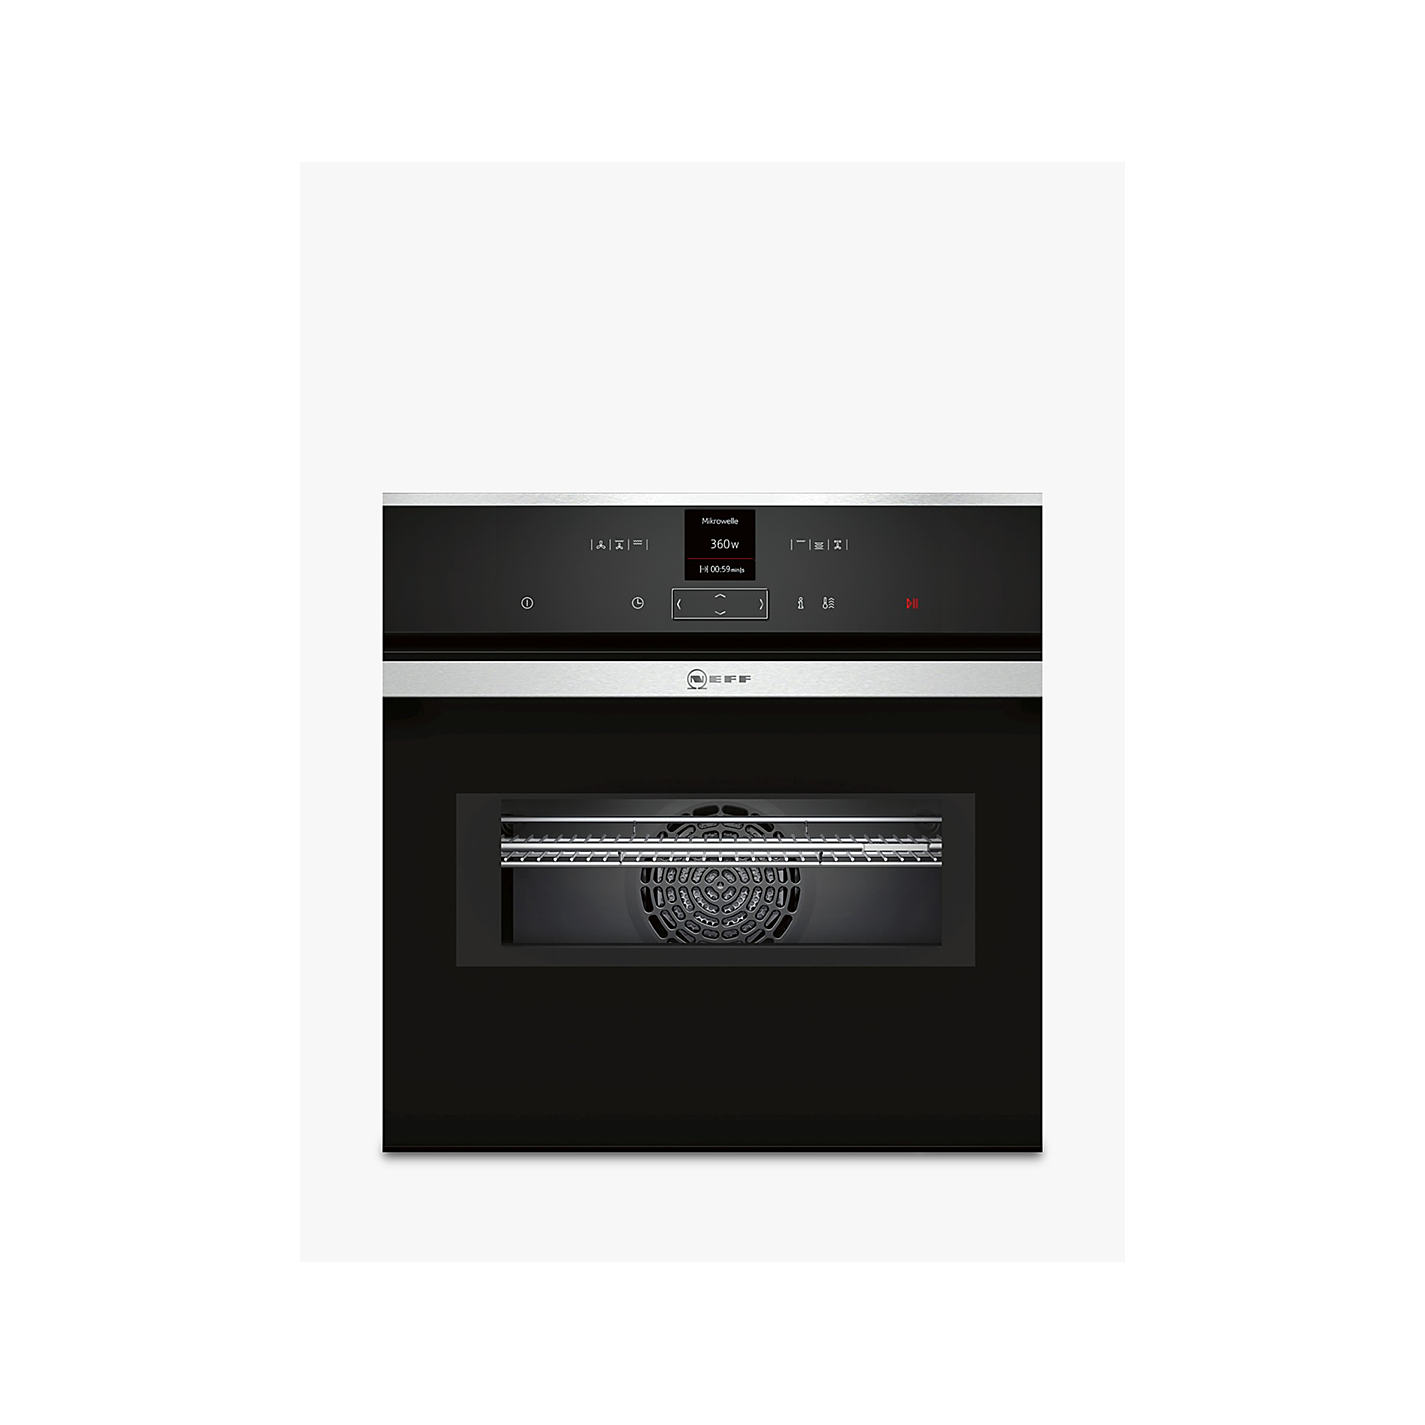 Neff C17mr02n0b Built In Combination Microwave Stainless Steel Online At Johnlewis